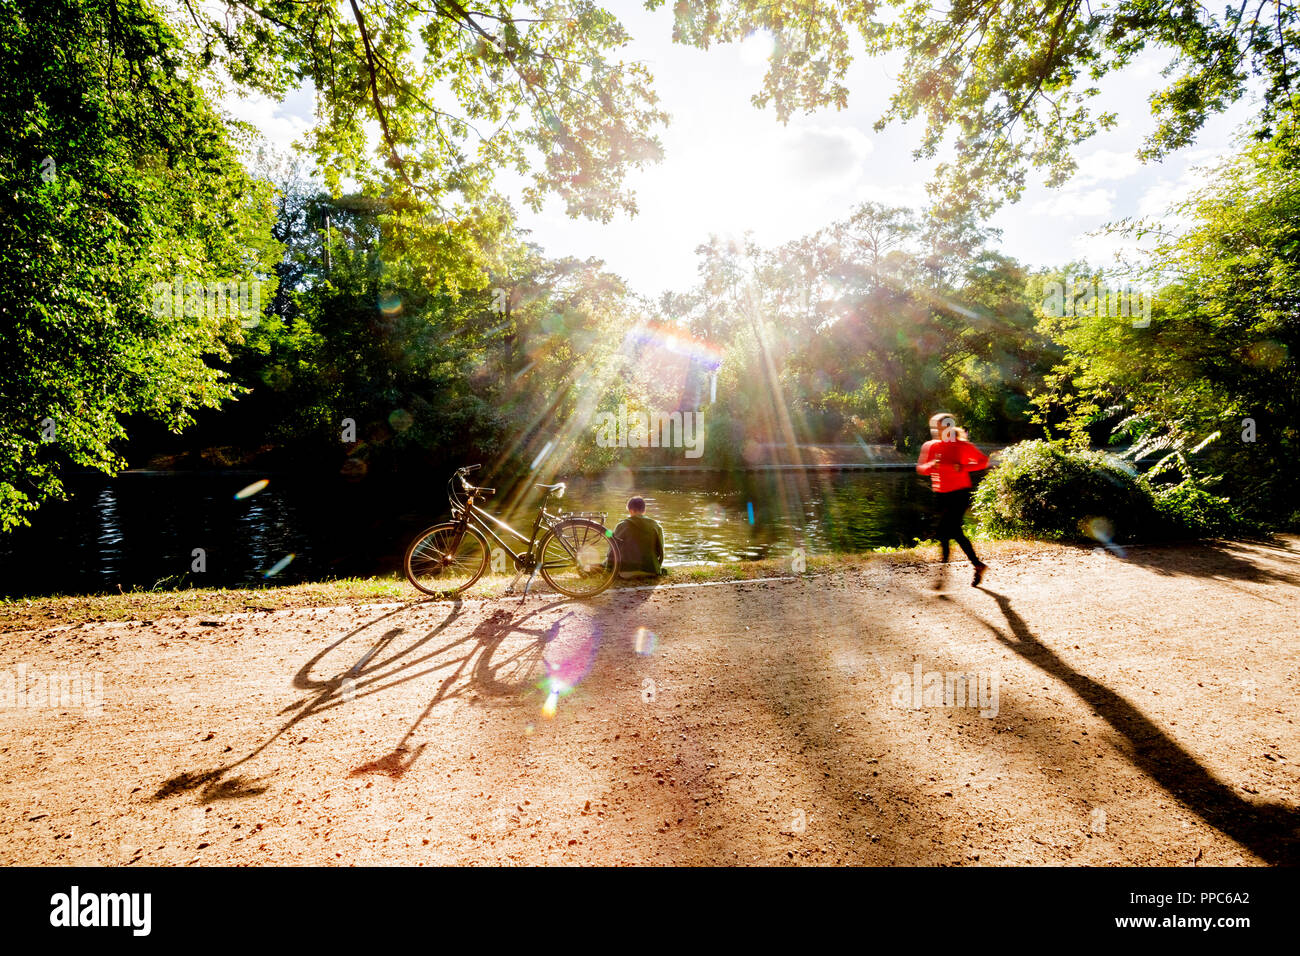 25 September 2018, Berlin: A woman sits next to her bicycle at the Landwehrkanal in the Tiergarten in the evening sun, while a jogger passes by. (Wiping effect due to long exposure time) Photo: Christoph Soeder/dpa - Stock Image